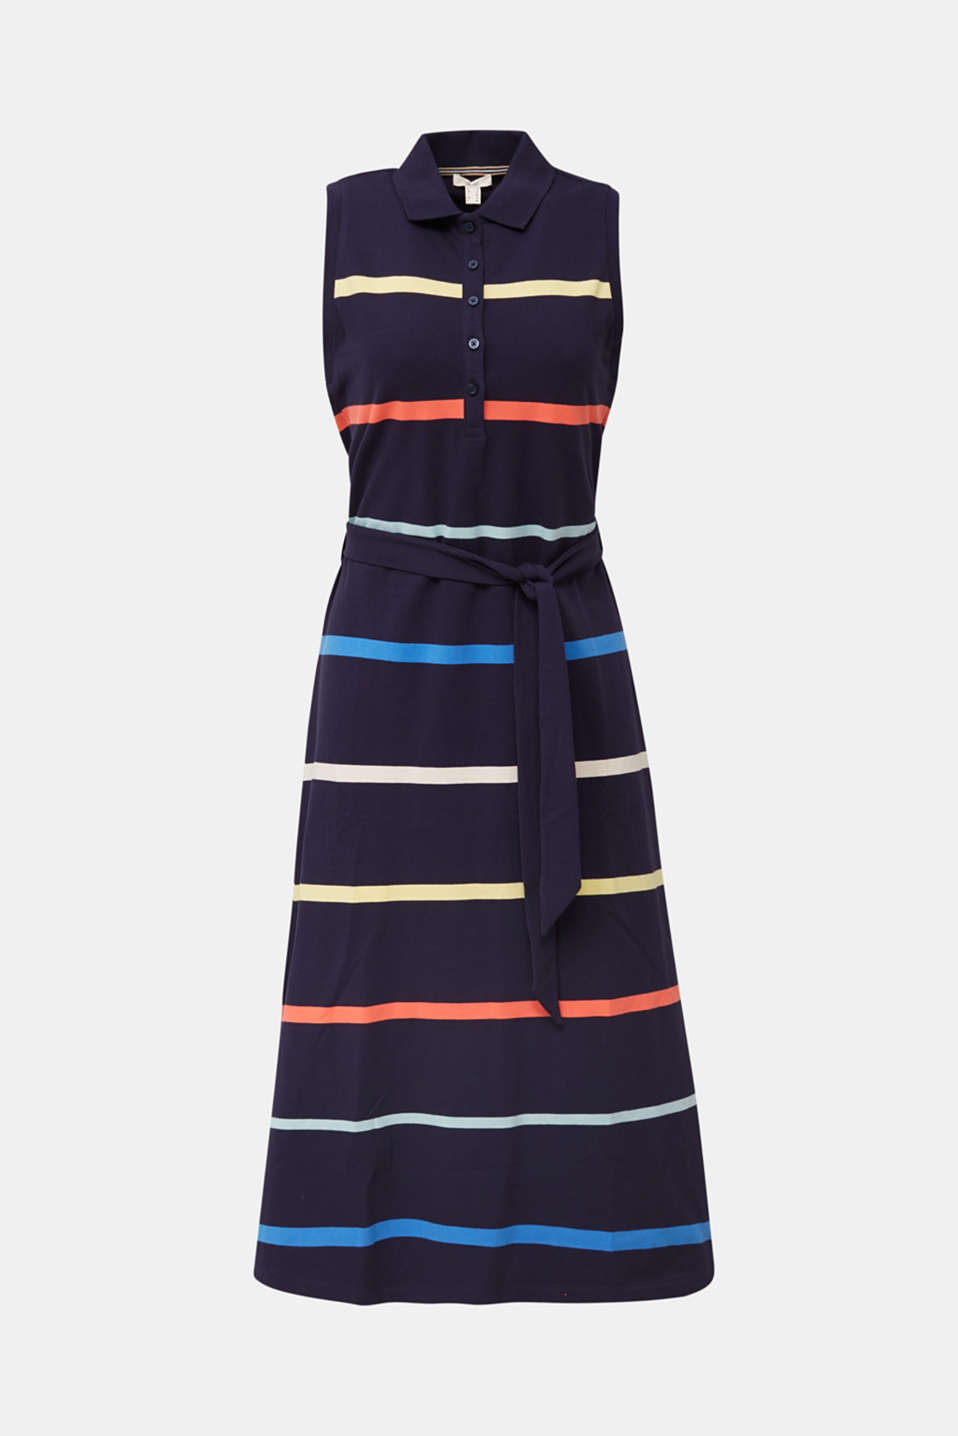 Striped polo dress in midi length, NAVY, detail image number 3